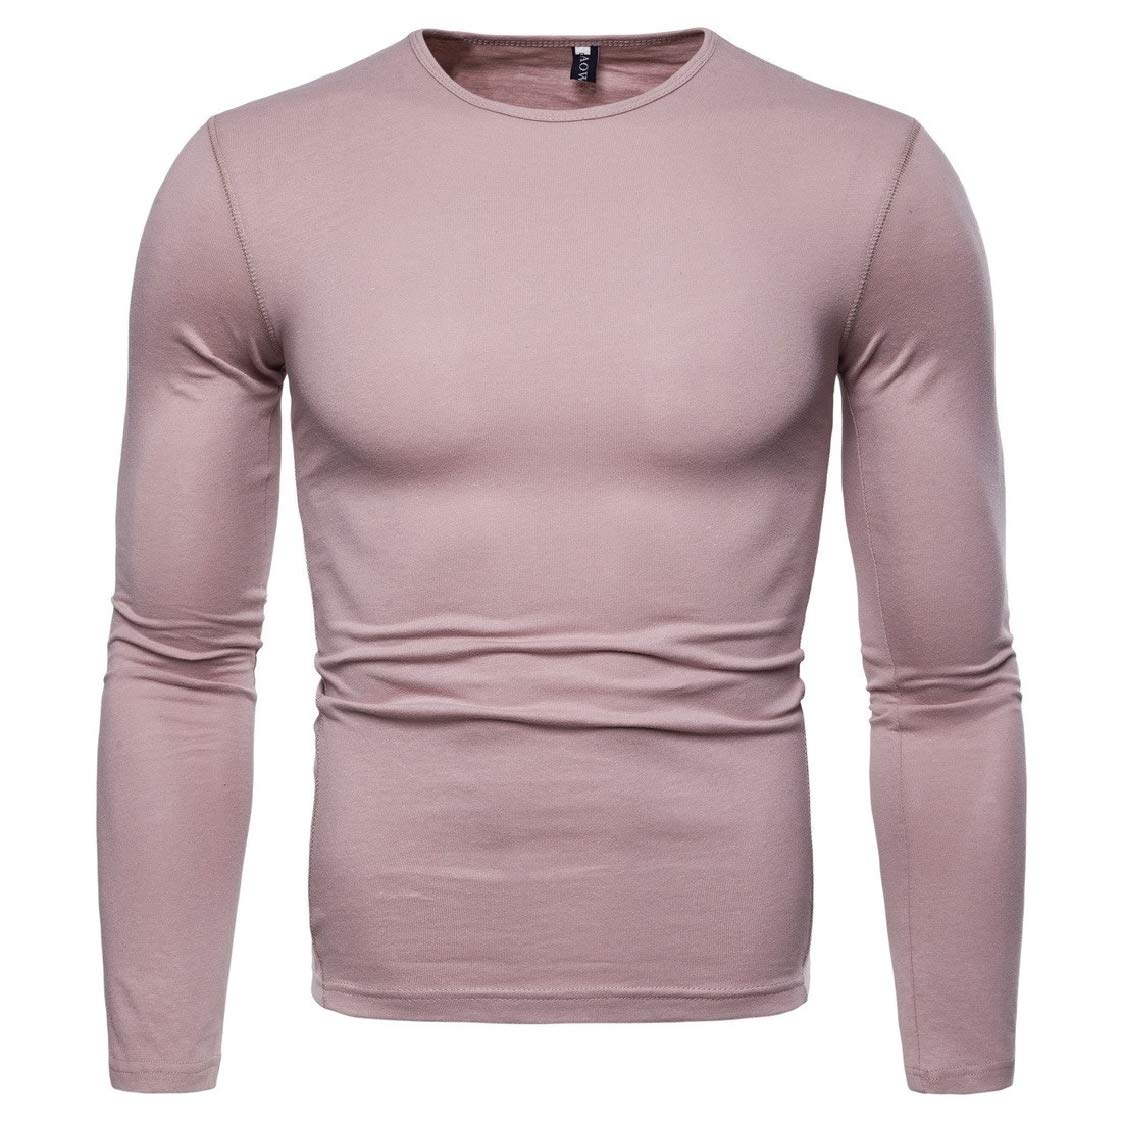 YUNY Mens Chic Soft Solid Colored Pullover Long Sleeve Spring//Fall T-Shirt Top AS2 M